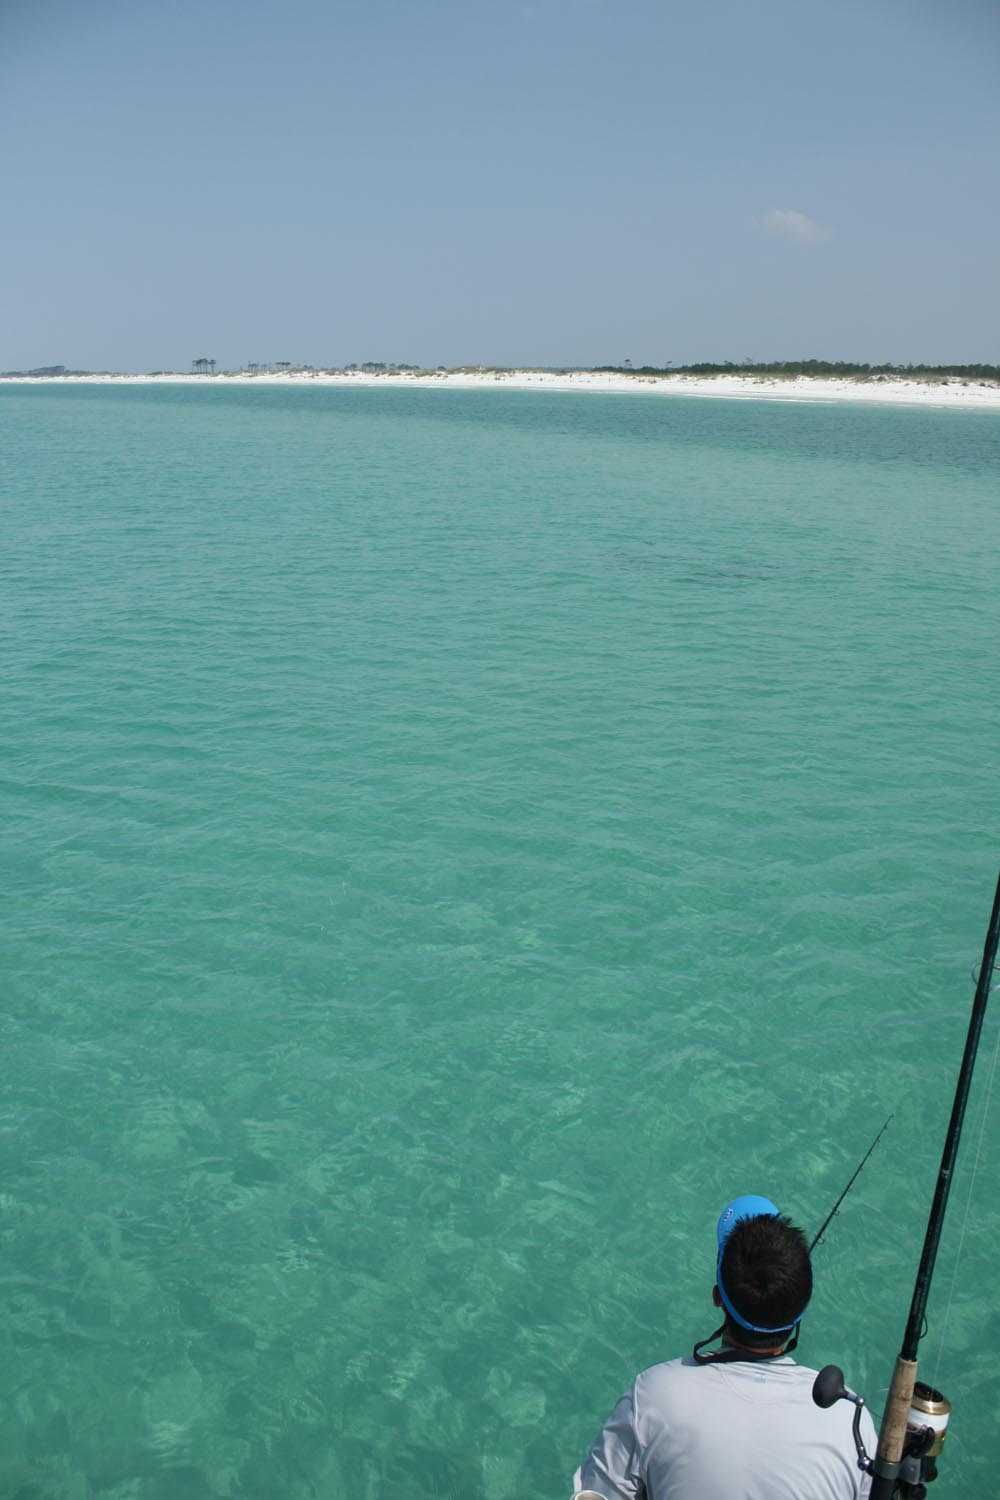 Panama city beach fishing guide capt john vann last local for Panama city beach charter fishing